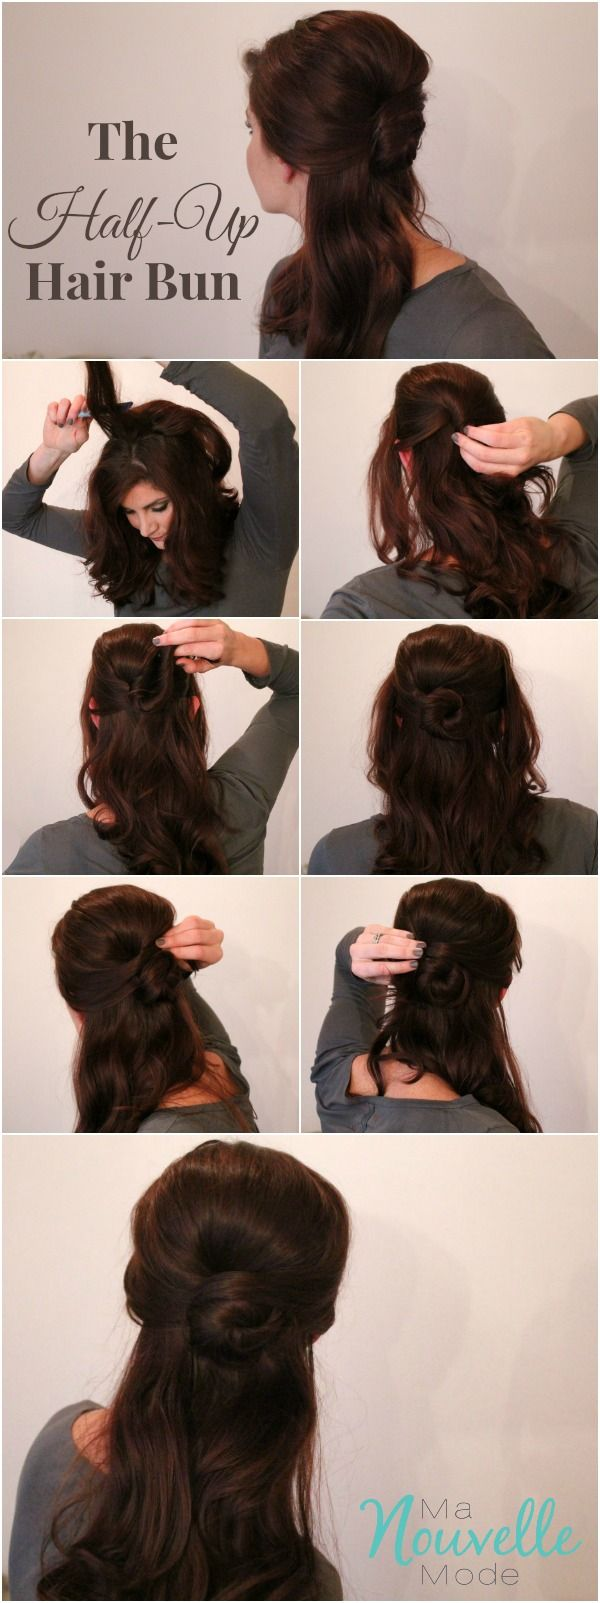 Easy Half Up hair bun step-by-step tutorial                                                                                                                                                                                 More